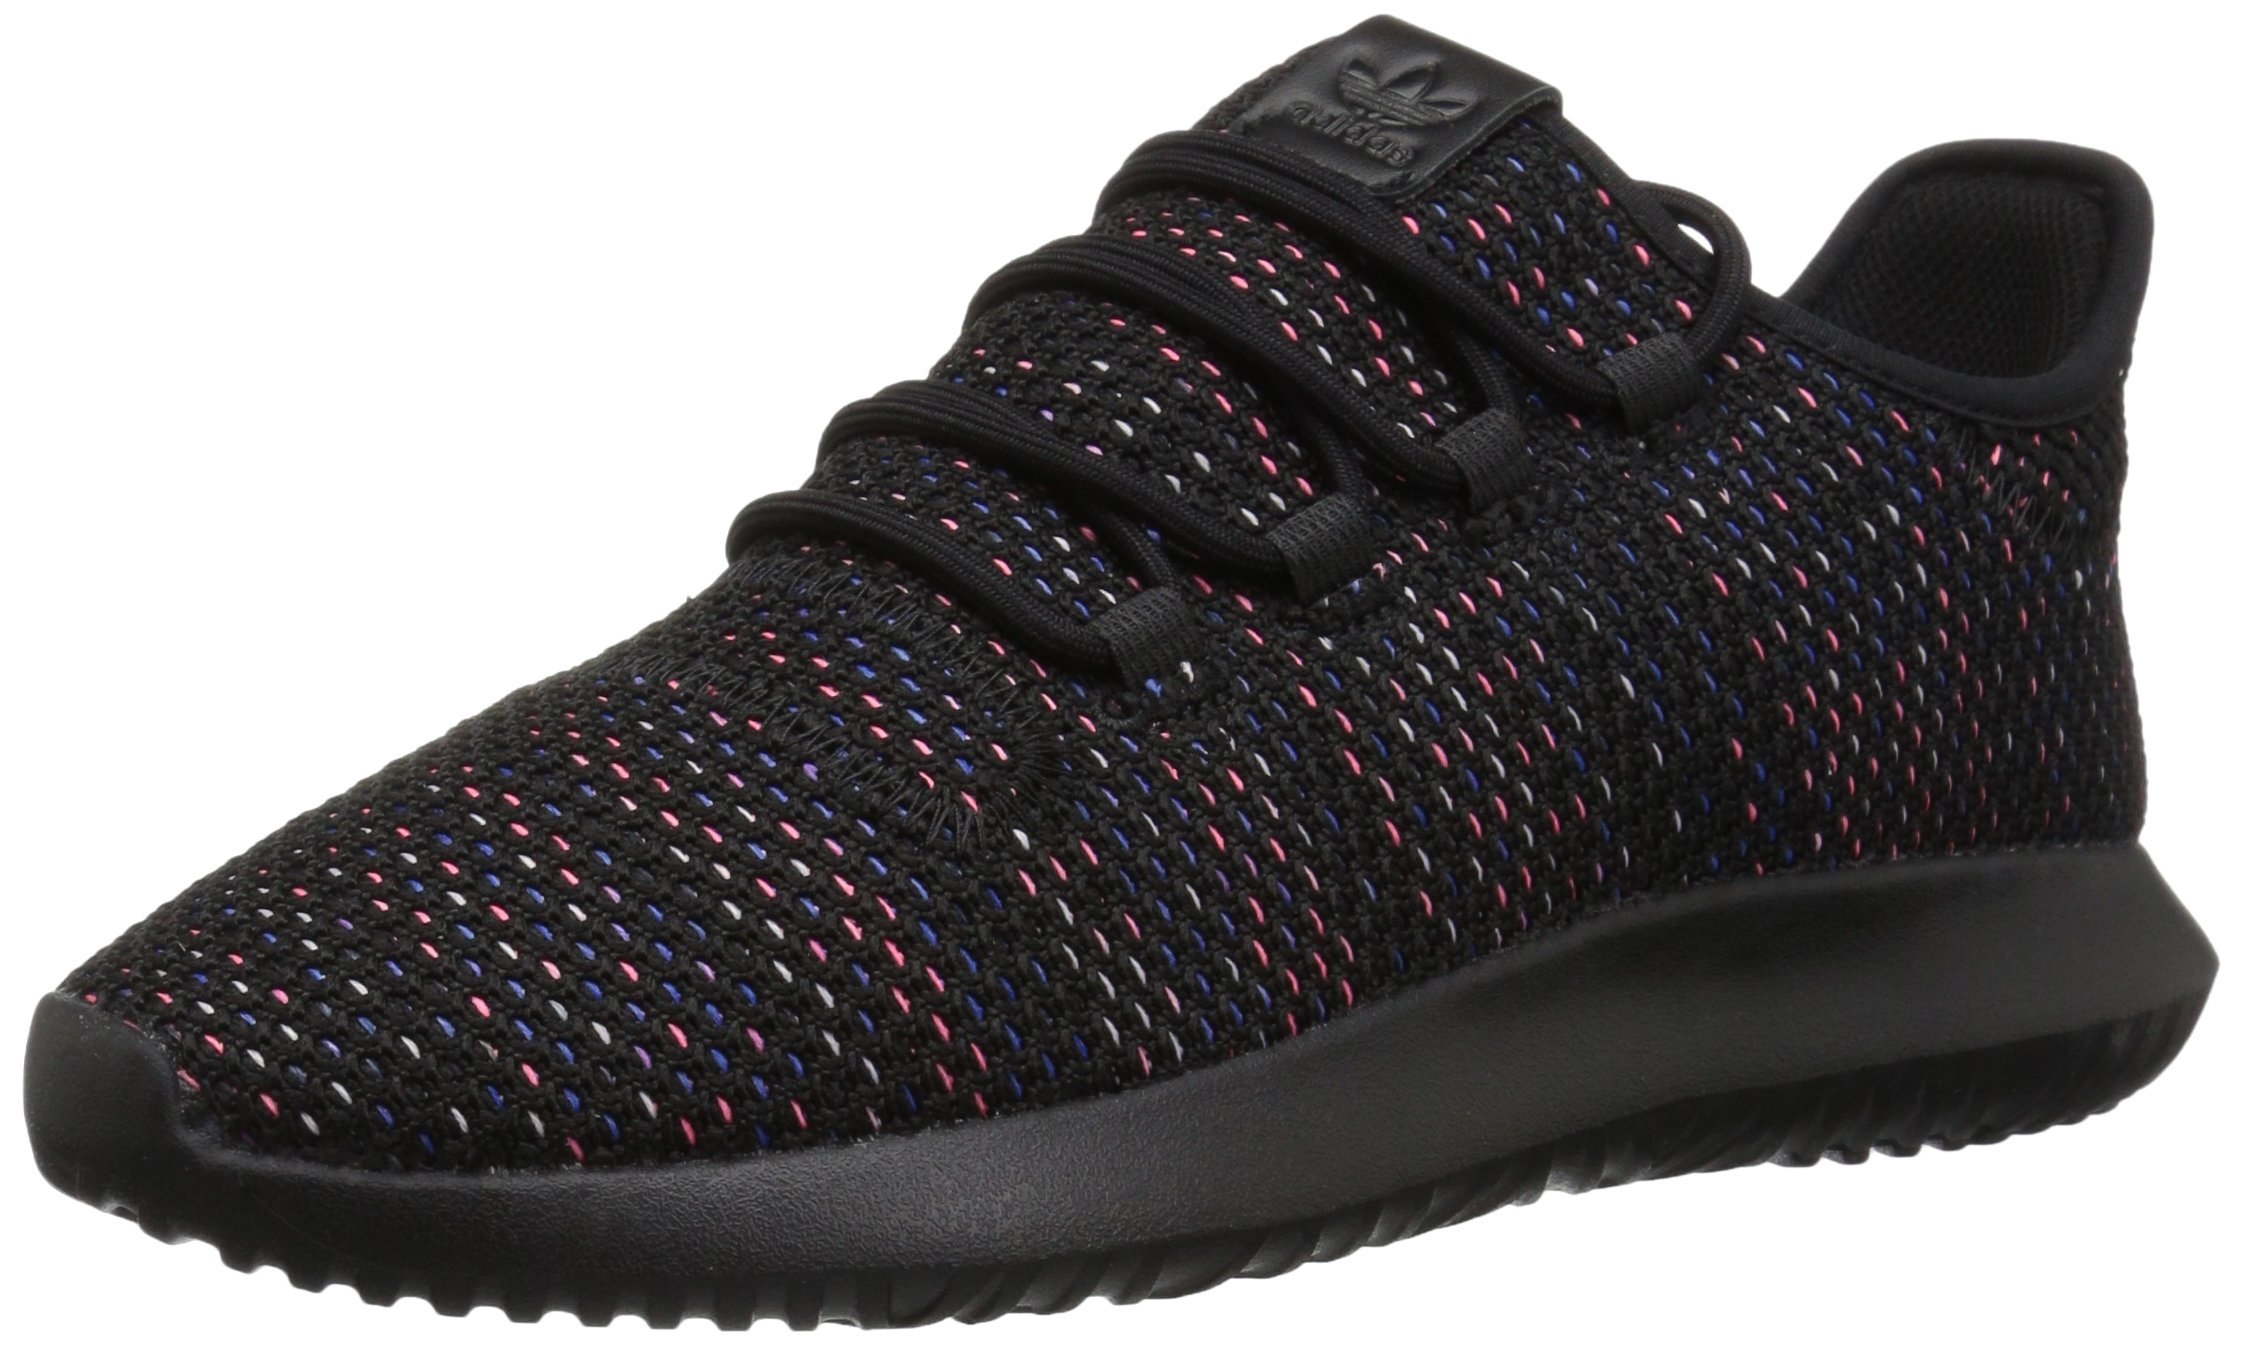 adidas Originals Men's Tubular Shadow Ck Fashion Sneakers Running Shoe, Black/Solar red/Mystery Ink, 9 M US